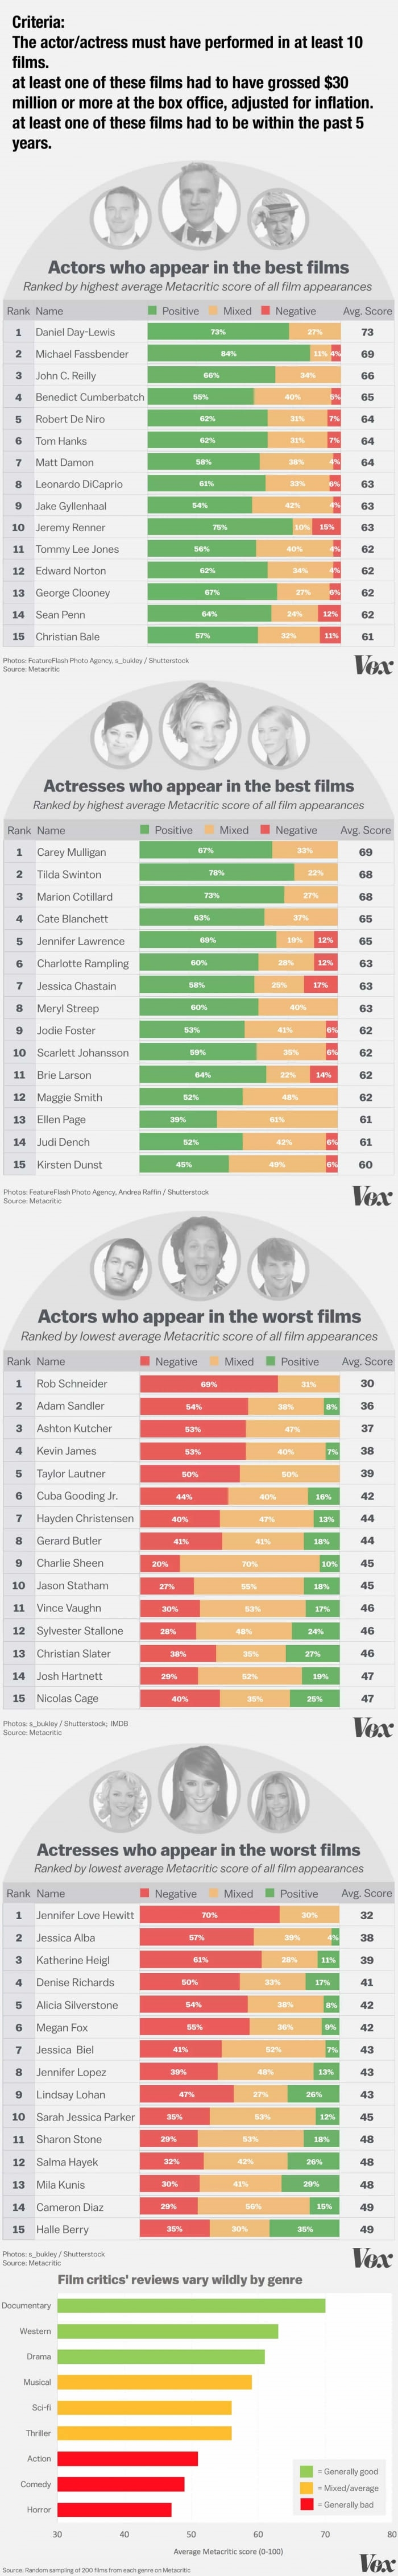 Hollywood's favourite and least favourite